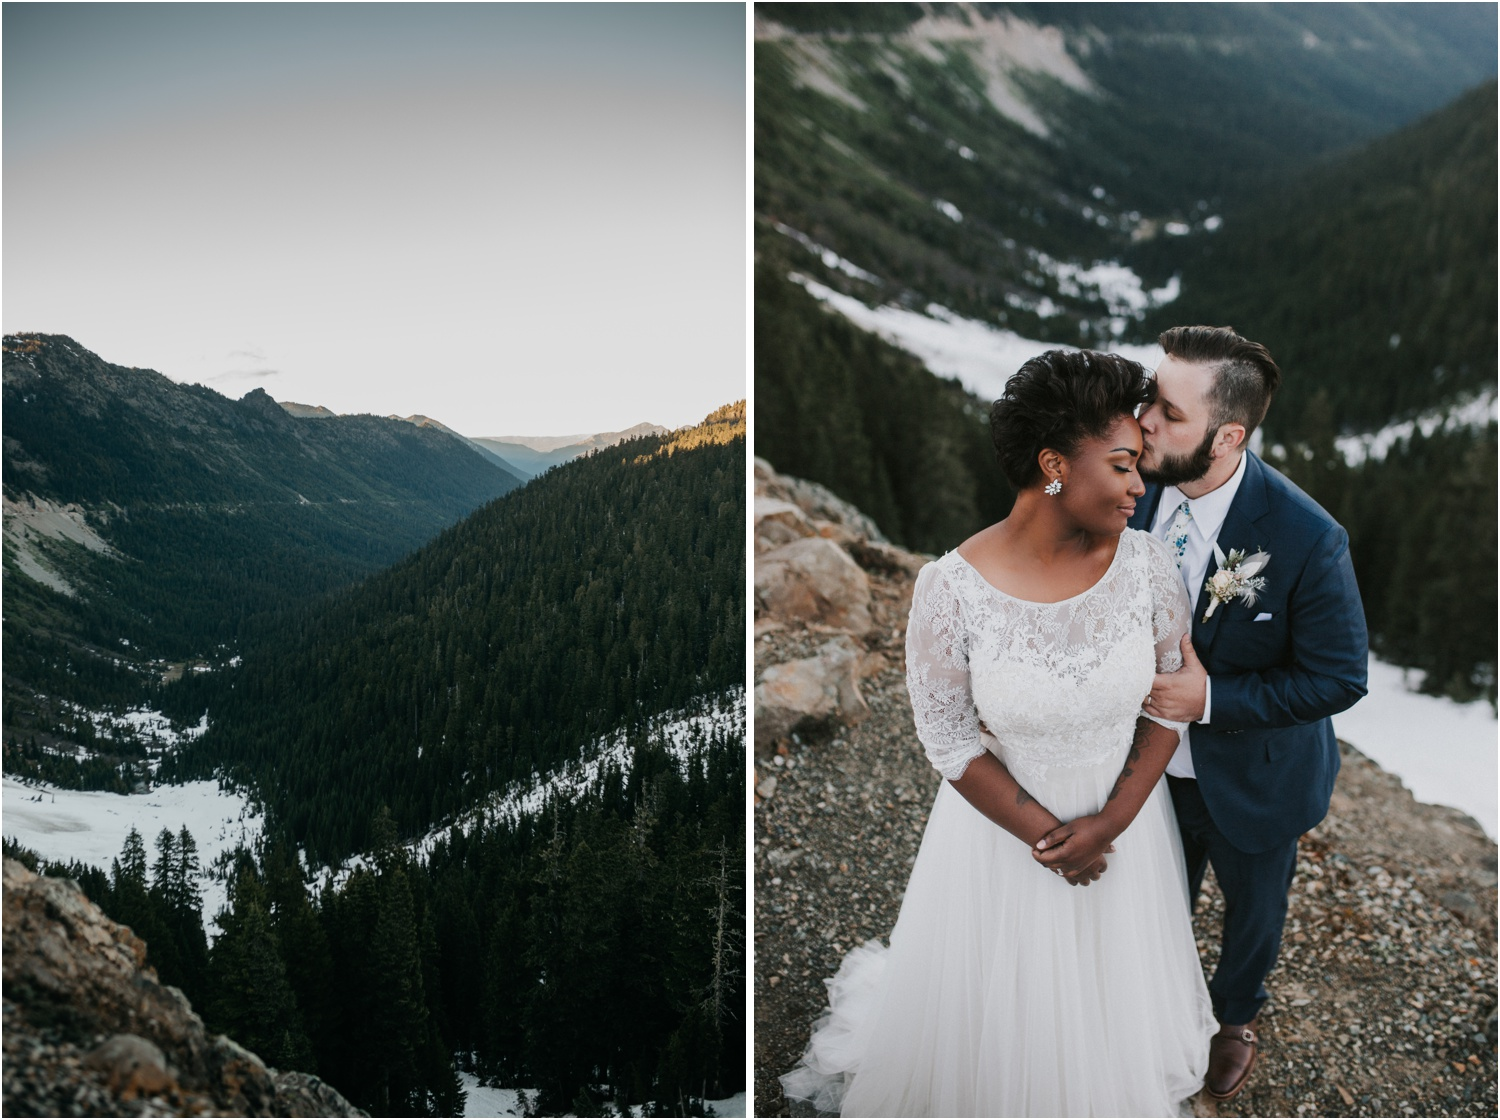 lovestoriesco-amber-phinisee-seattle-mount-rainier-elopement_0082.jpg